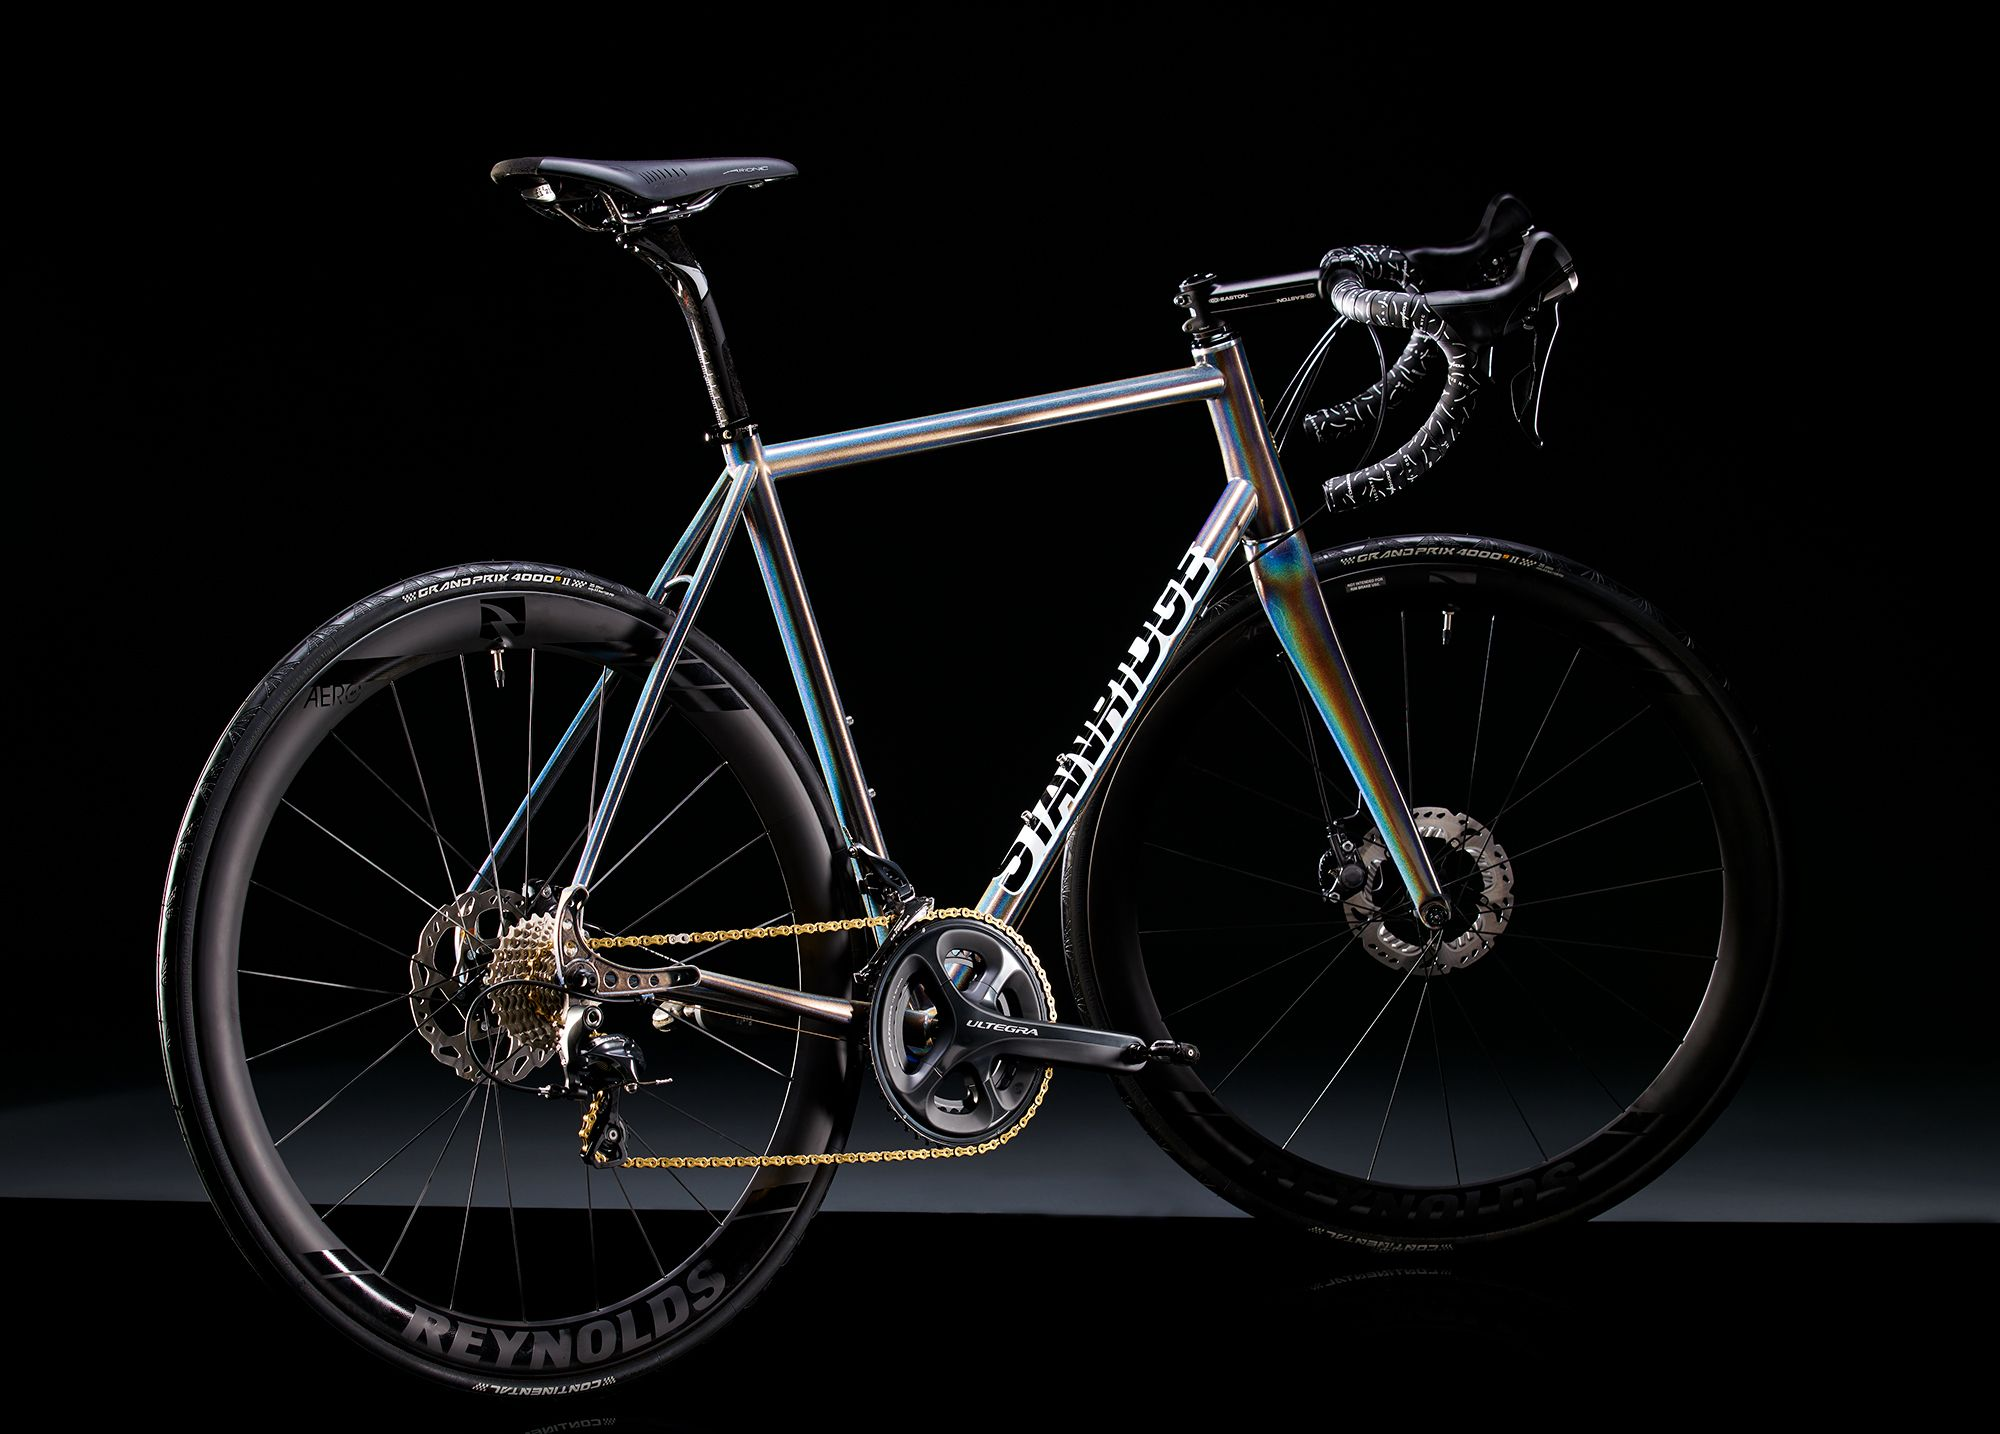 Stanridge Speed NAHBS Teaser | The Radavist